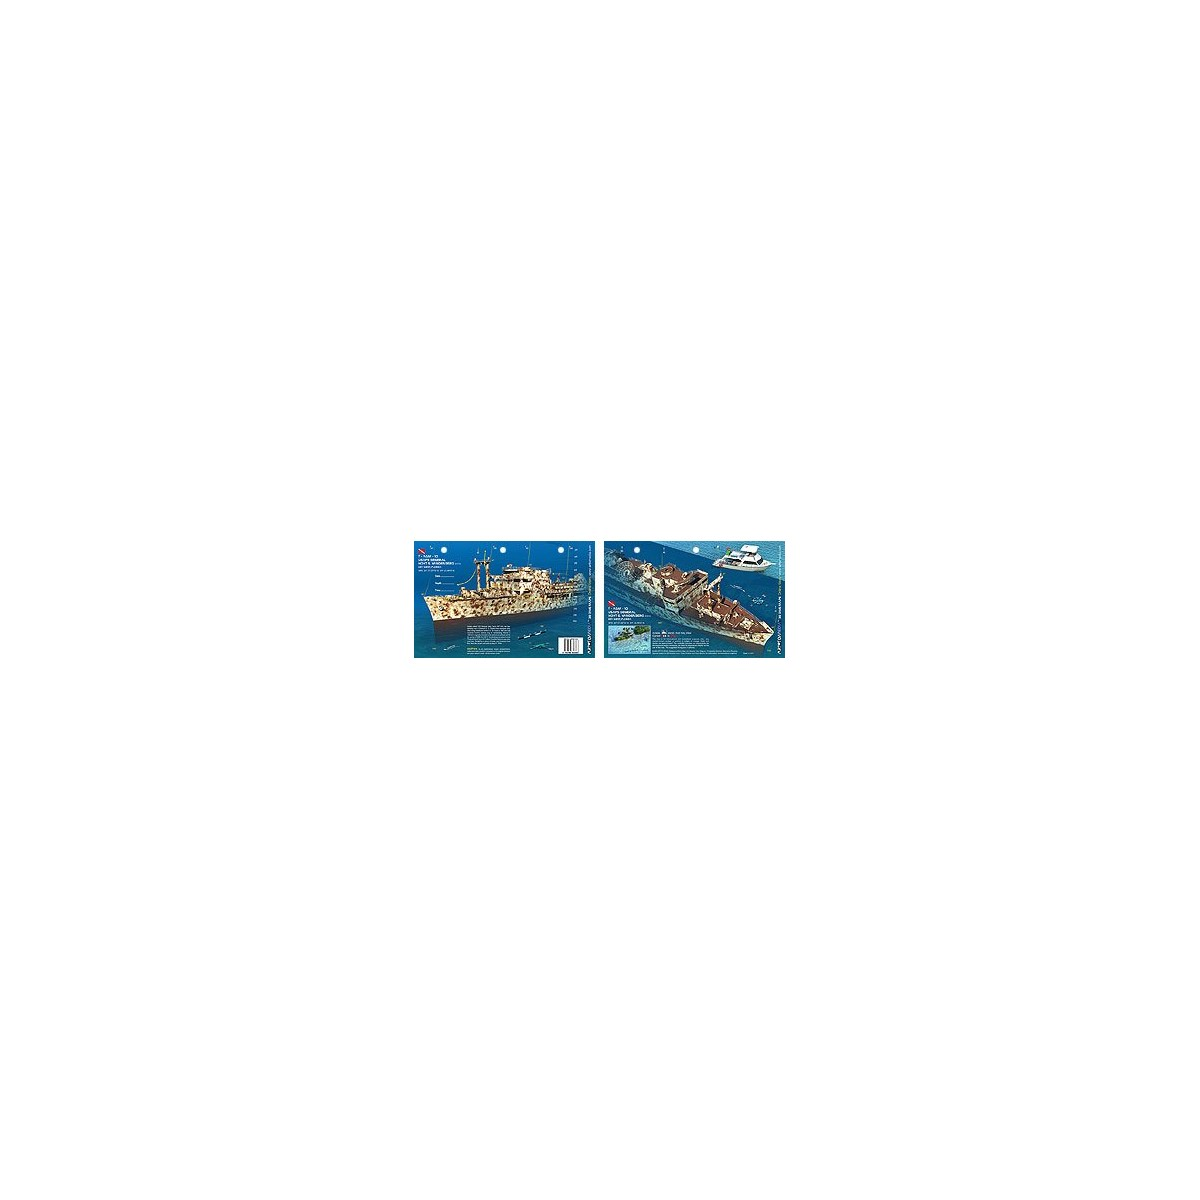 Vandenberg Bow in Key West, Florida (8.5 x 5.5 Inches) (21.6 x 15cm) - New Art to Media Underwater Waterproof 3D Dive Site Map